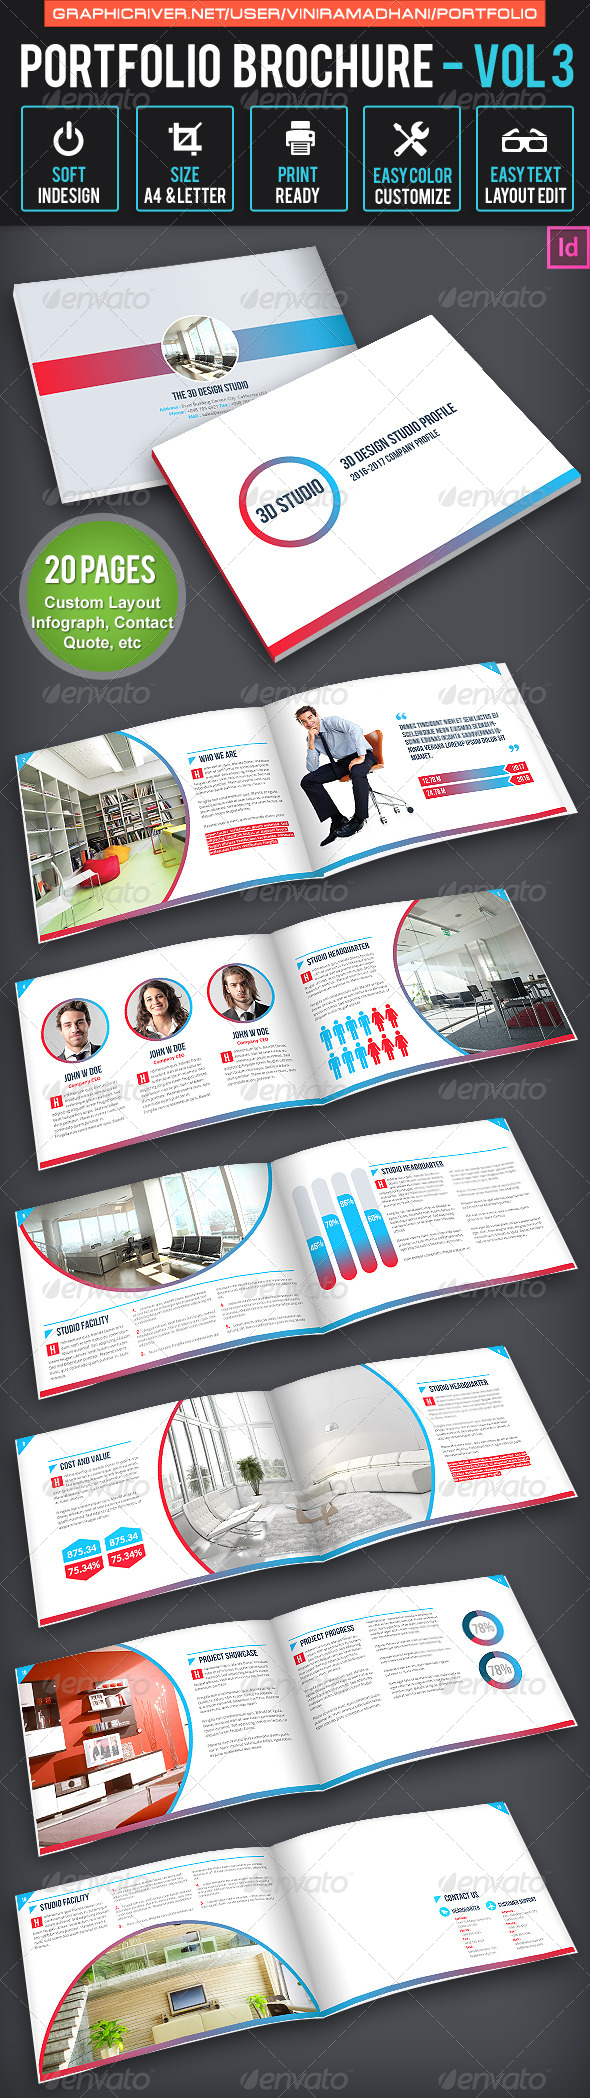 Portfolio Brochure Volume 3 - Corporate Brochures